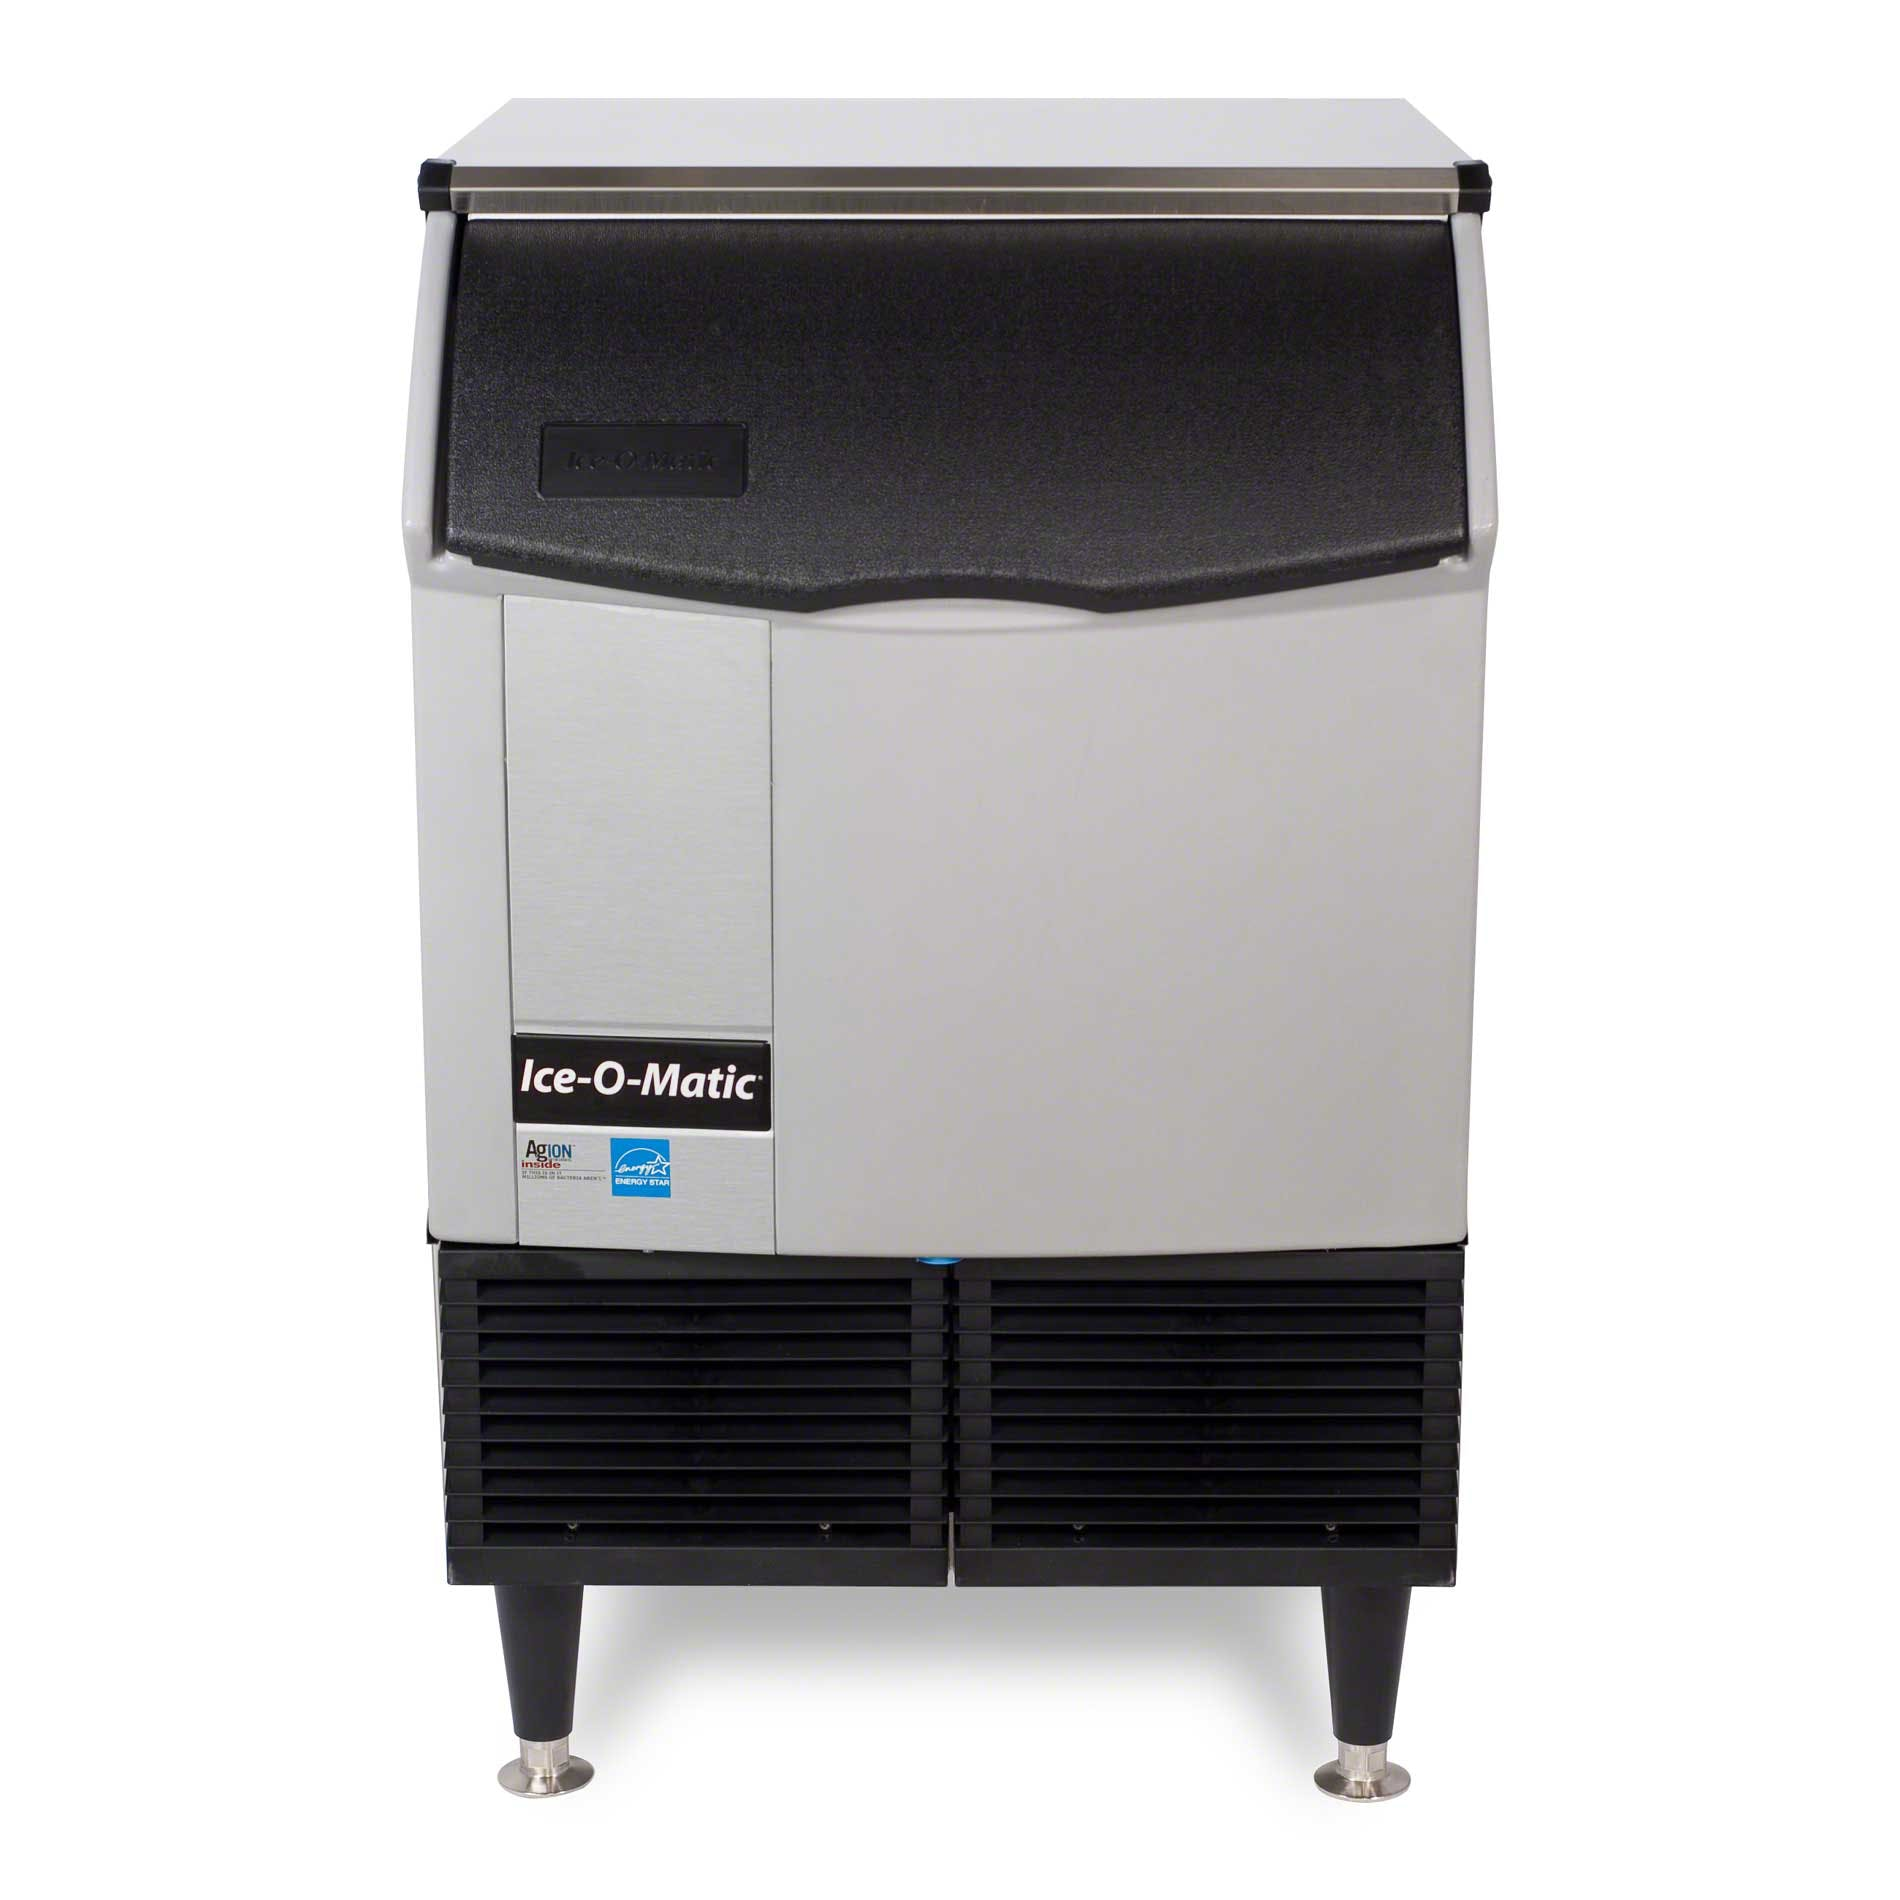 Ice-O-Matic - ICEU226FA 241 lb Self-Contained Full Cube Ice Machine Ice machine sold by Food Service Warehouse